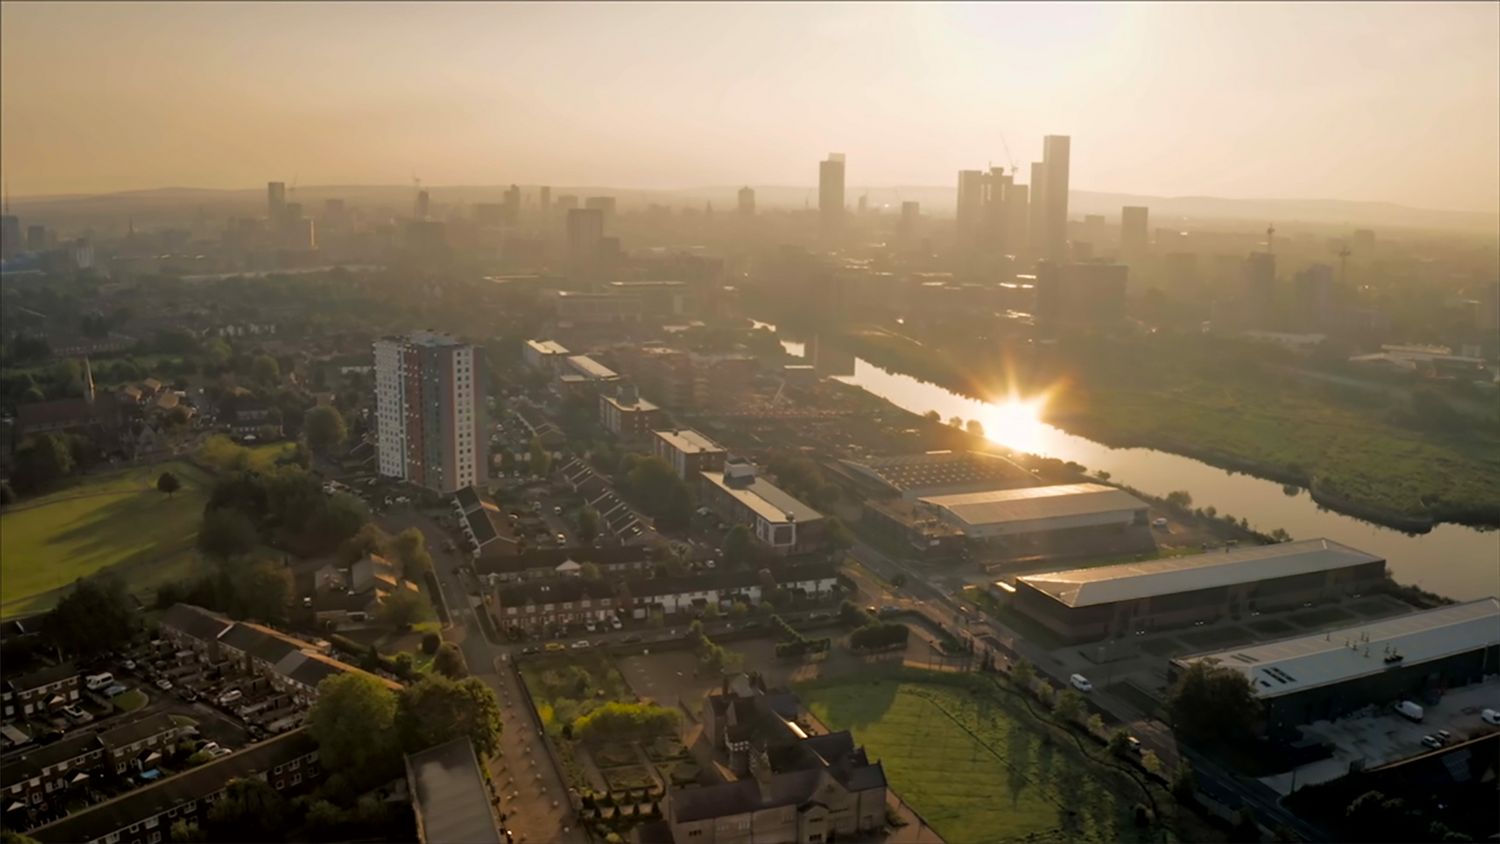 TUW_073_DRONE SHOT OF MANCHESTER